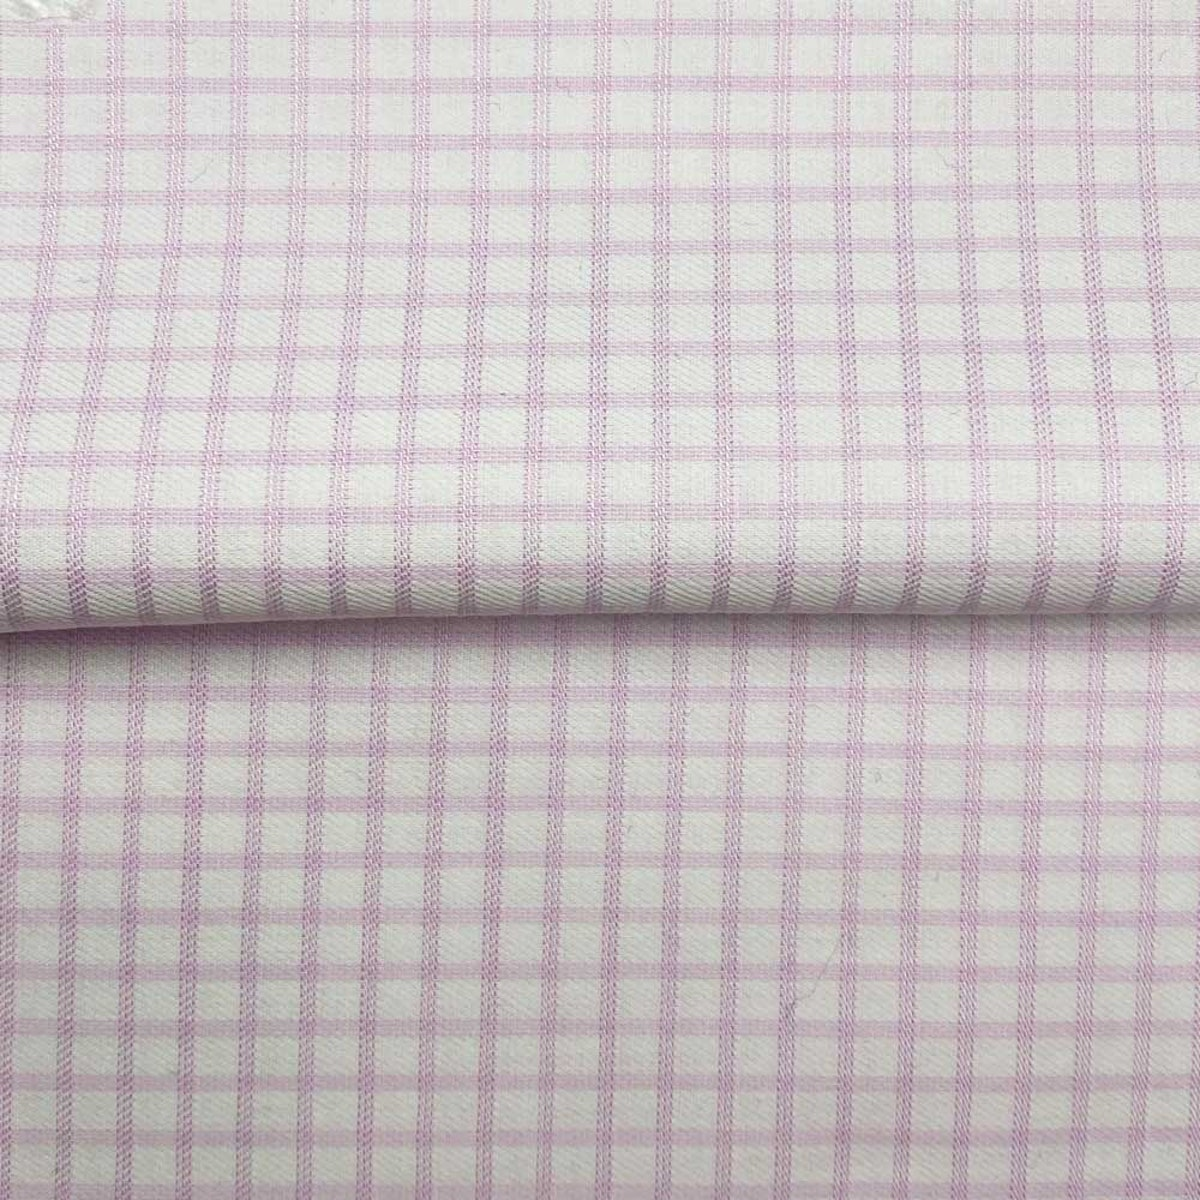 InStitchu Shirt Fabric 171